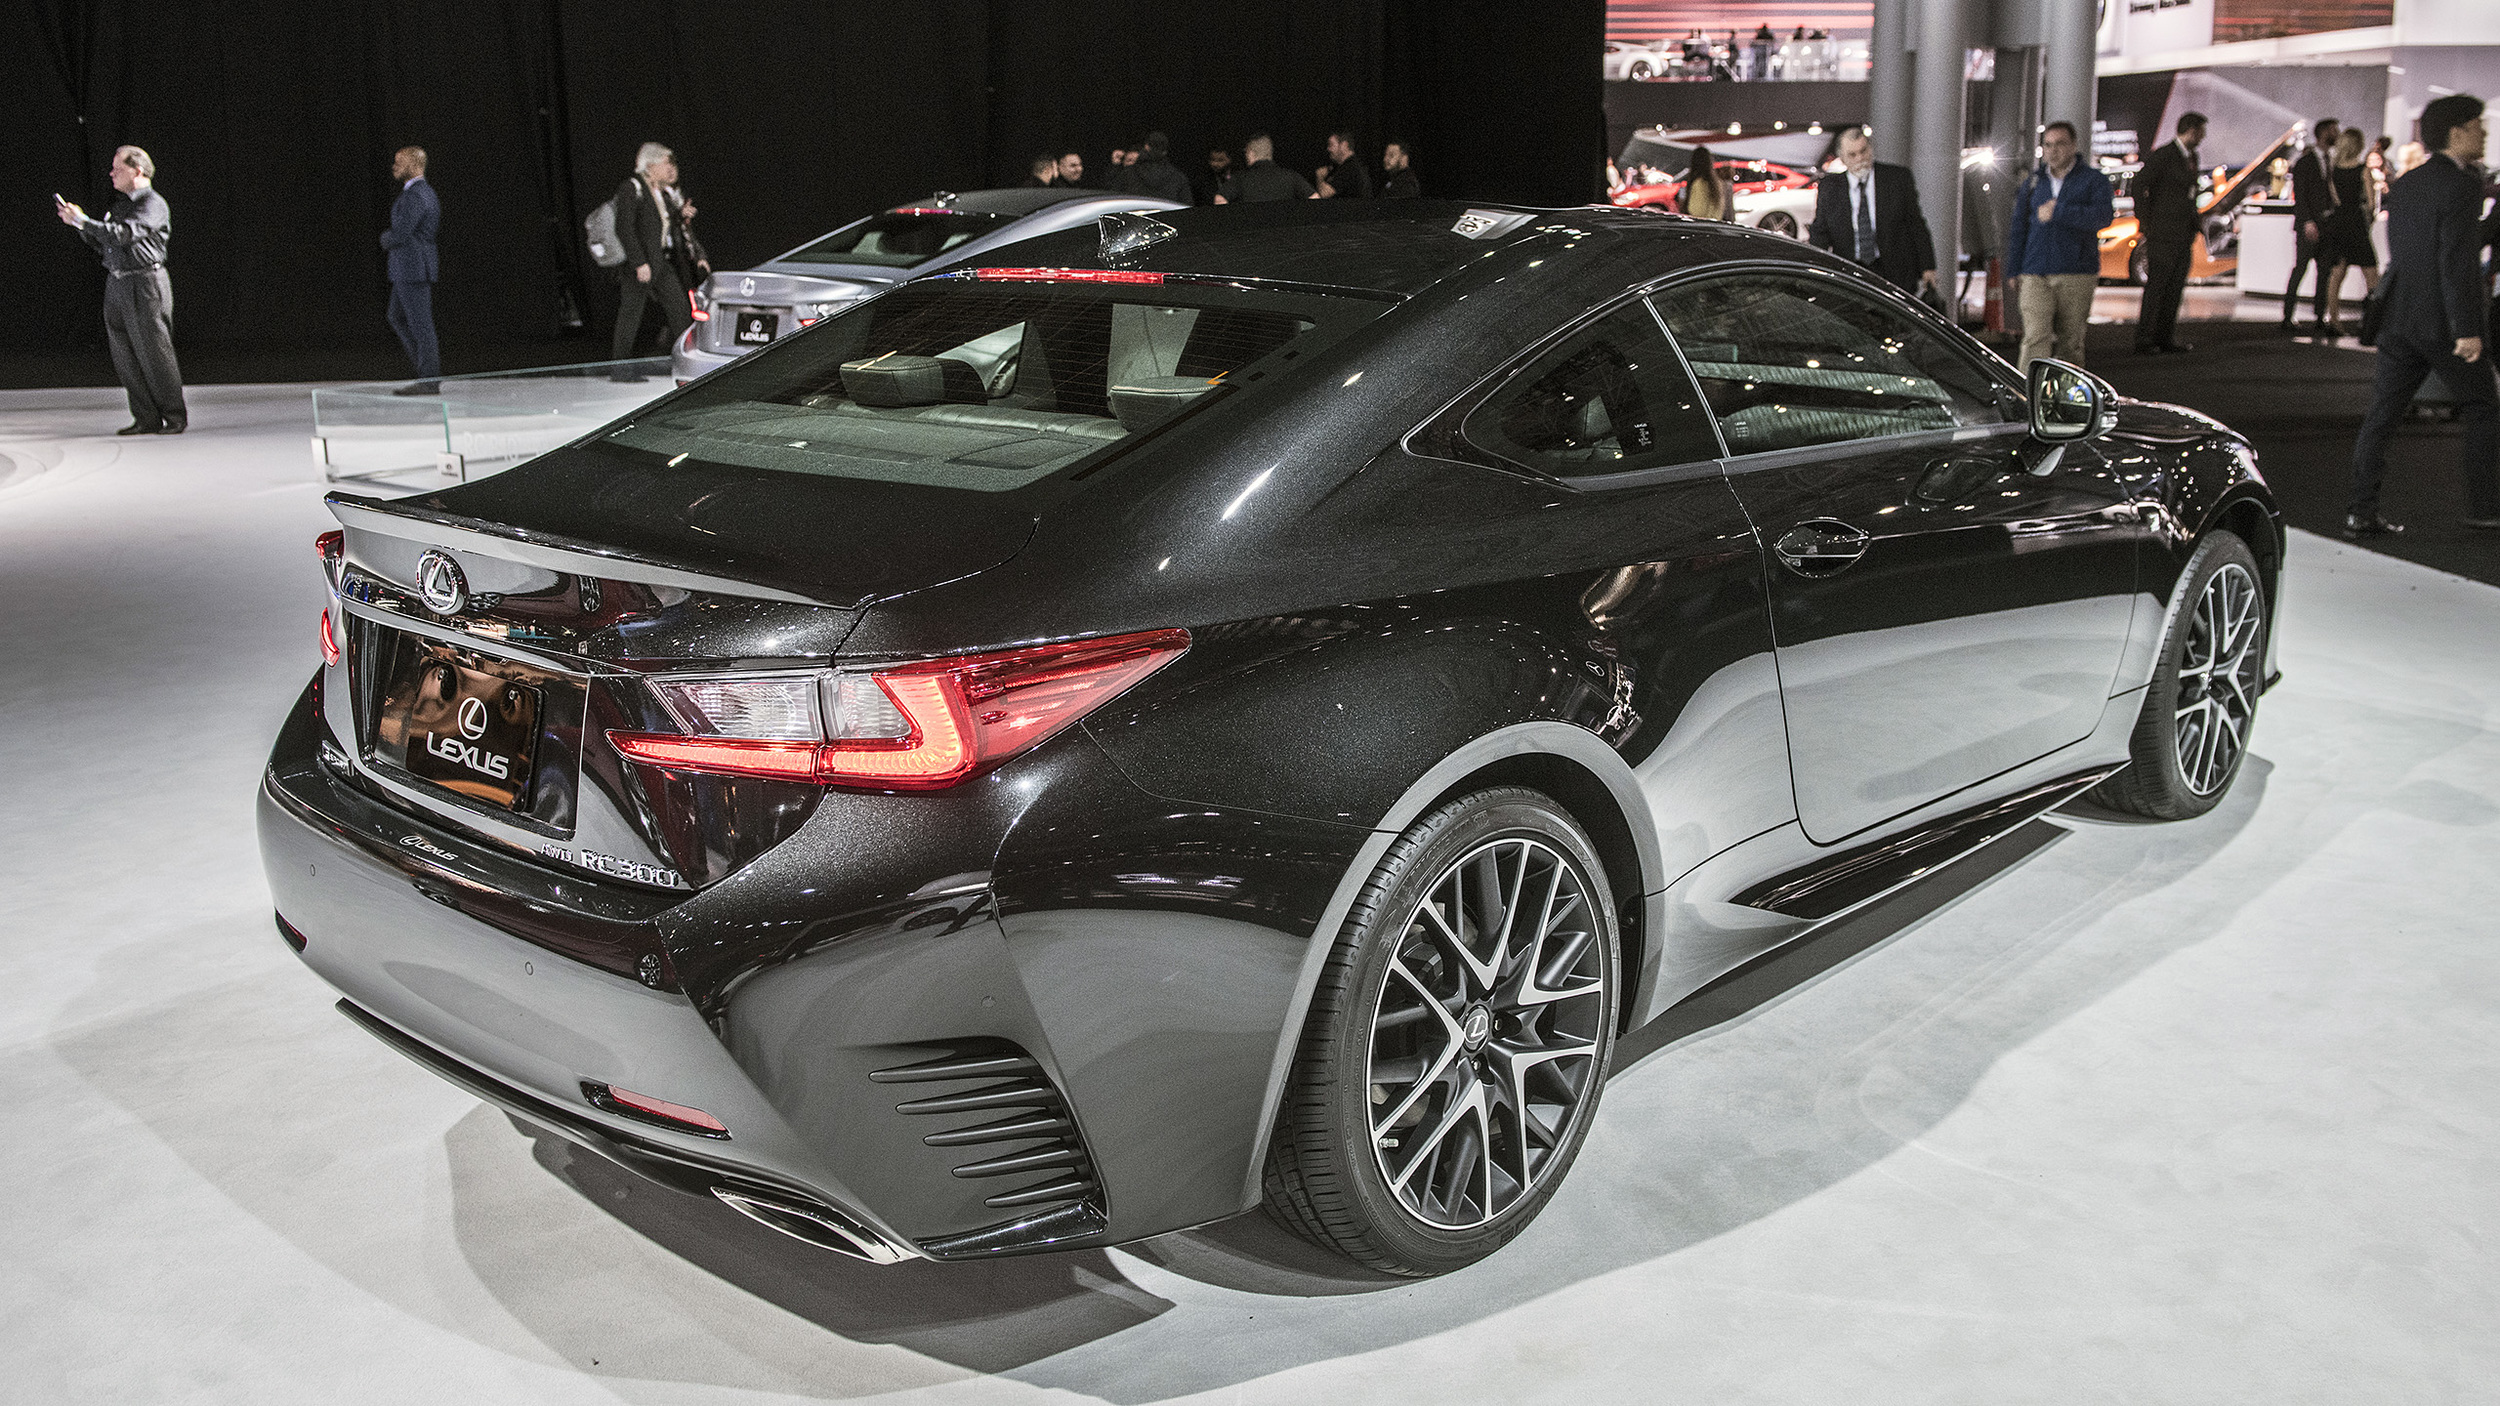 Certified Pre Owned Lexus >> Lexus RC coupe Black Line special edition limited to just 650 units | Autoblog